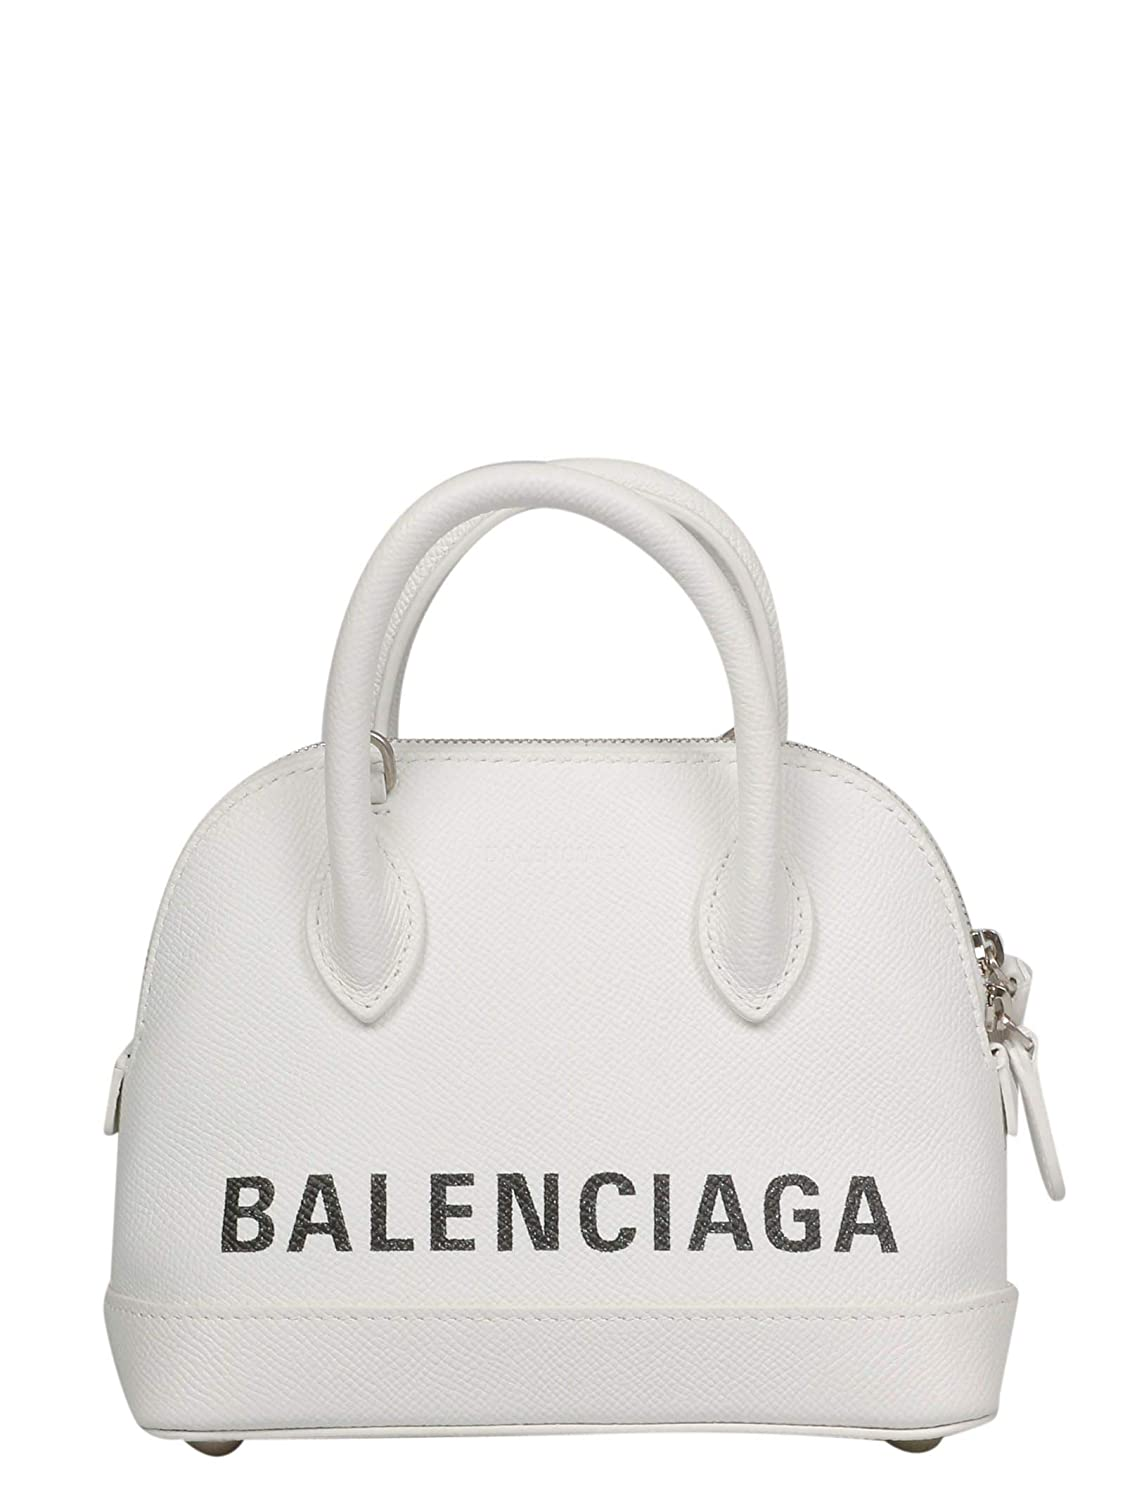 - Balenciaga Women's 5506460OTII9000 White Leather Handbag